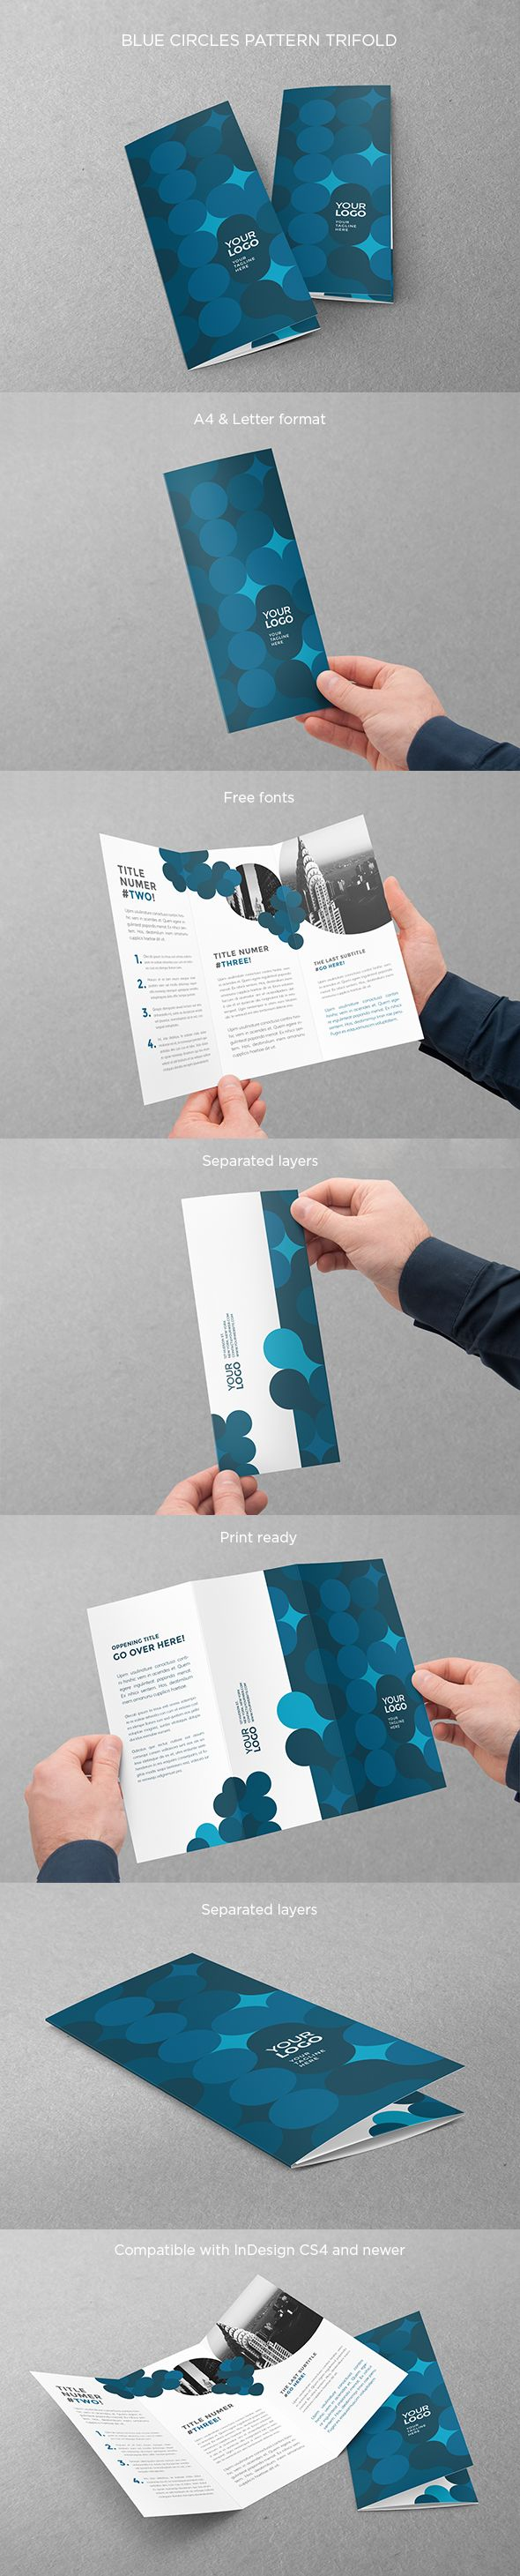 Blue Circles Pattern Trifold. Download here: http://graphicriver.net/item/blue-circles-pattern-trifold/13529822?ref=abradesign